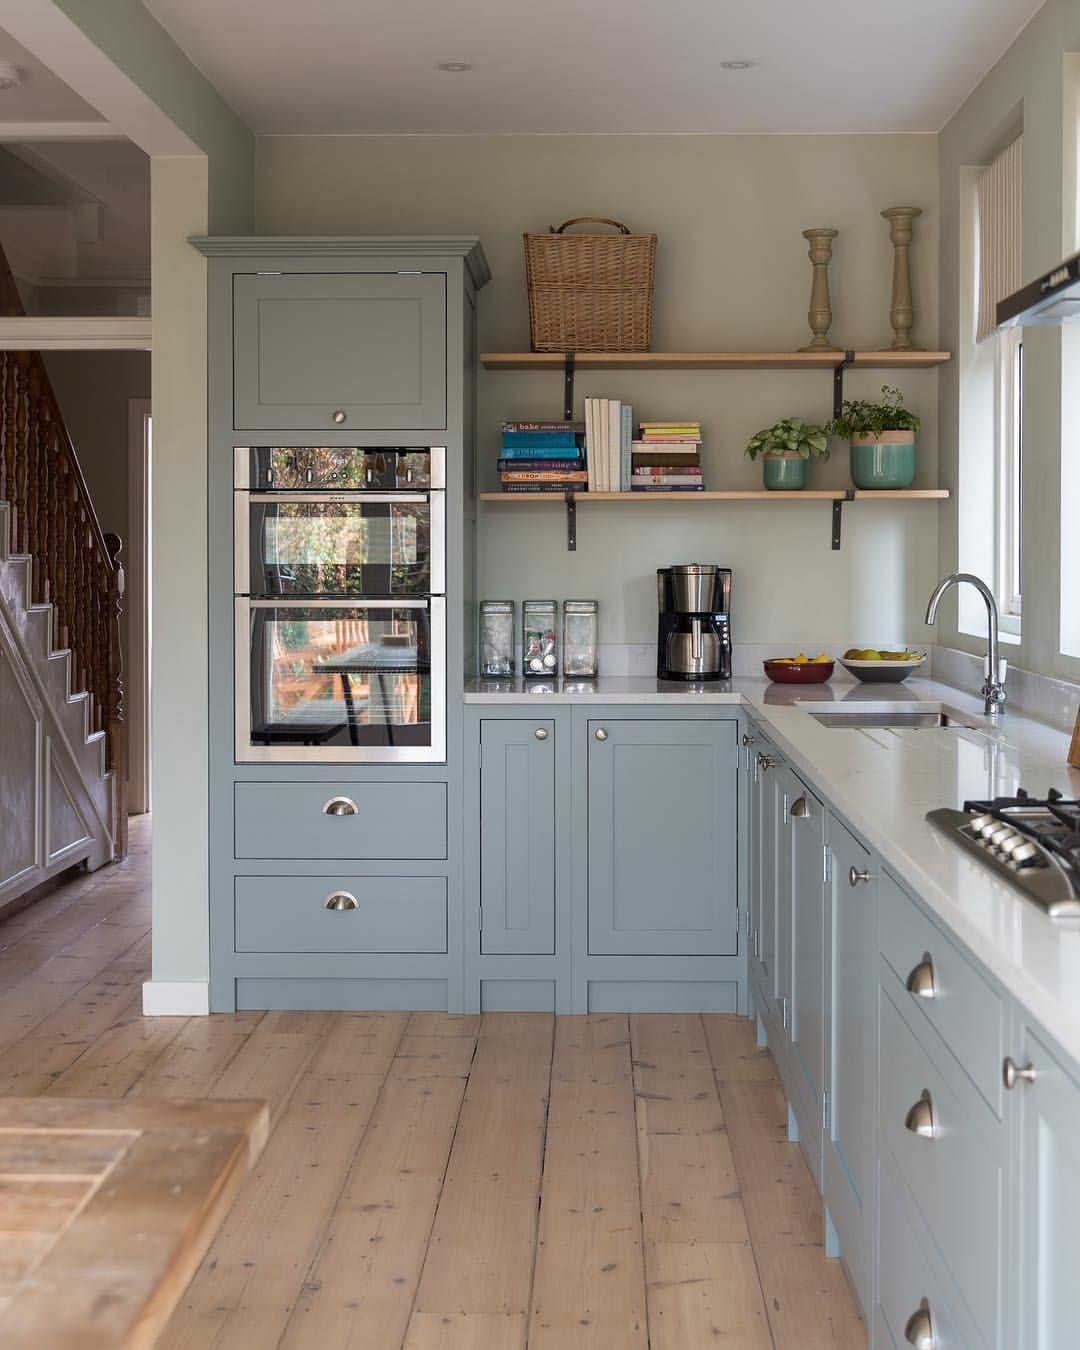 Pin by maria urdaneta on home goals in pinterest kitchen shaker and design also rh